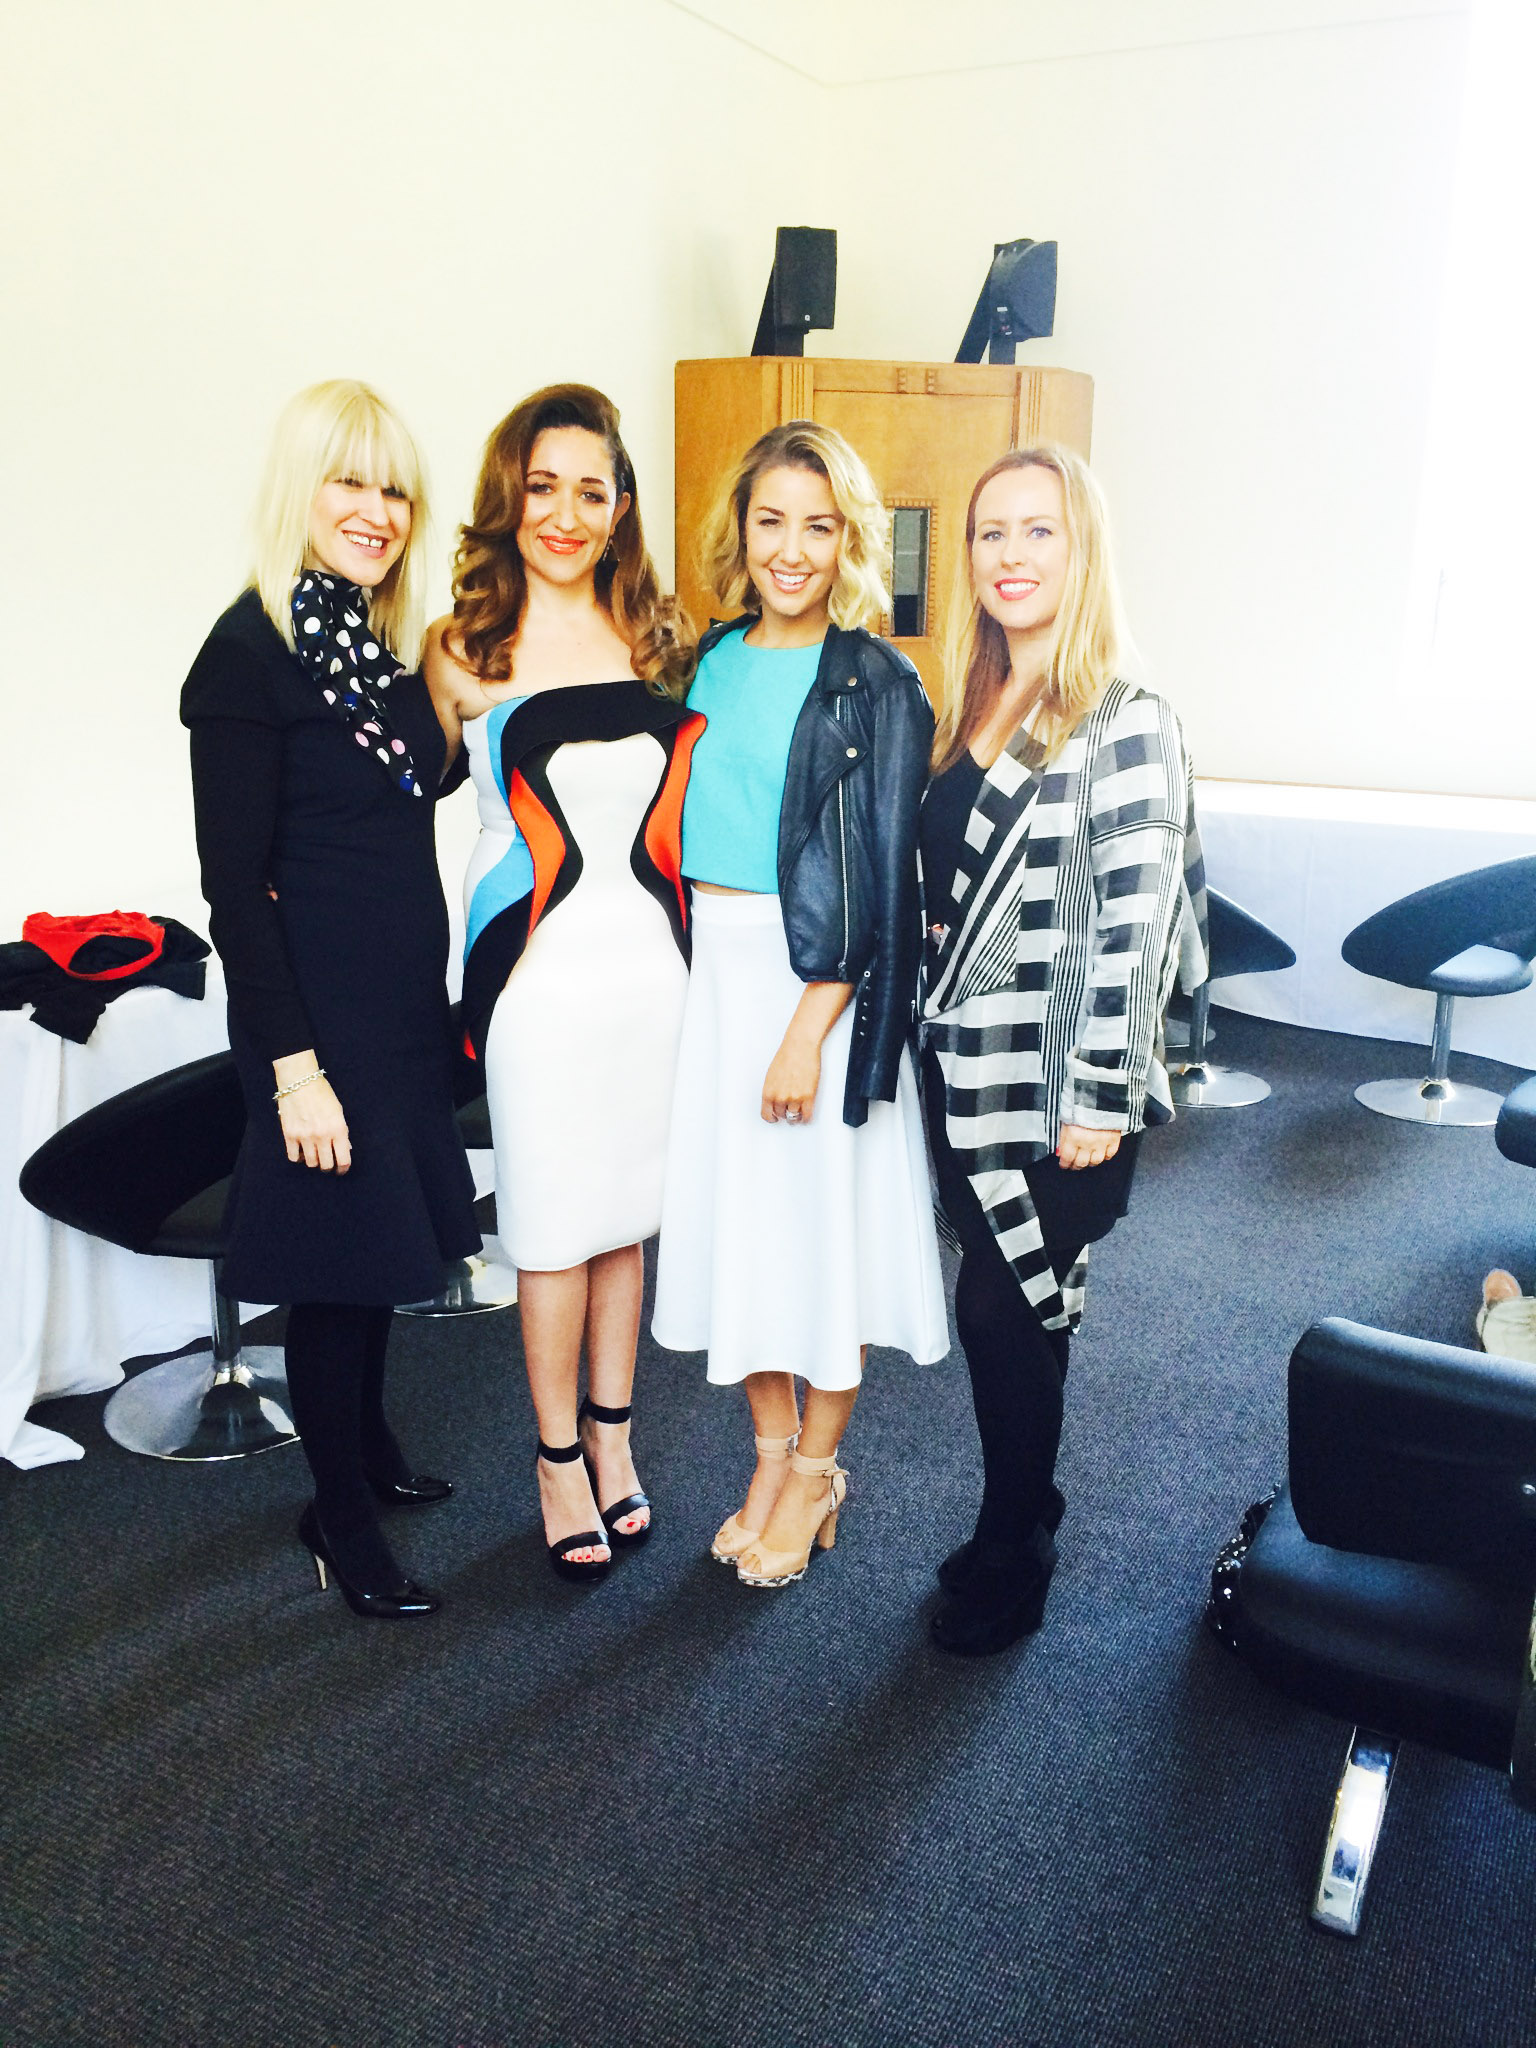 My dream team! Jo from Toni & Guy and Becca Gilmartin with Ally and I